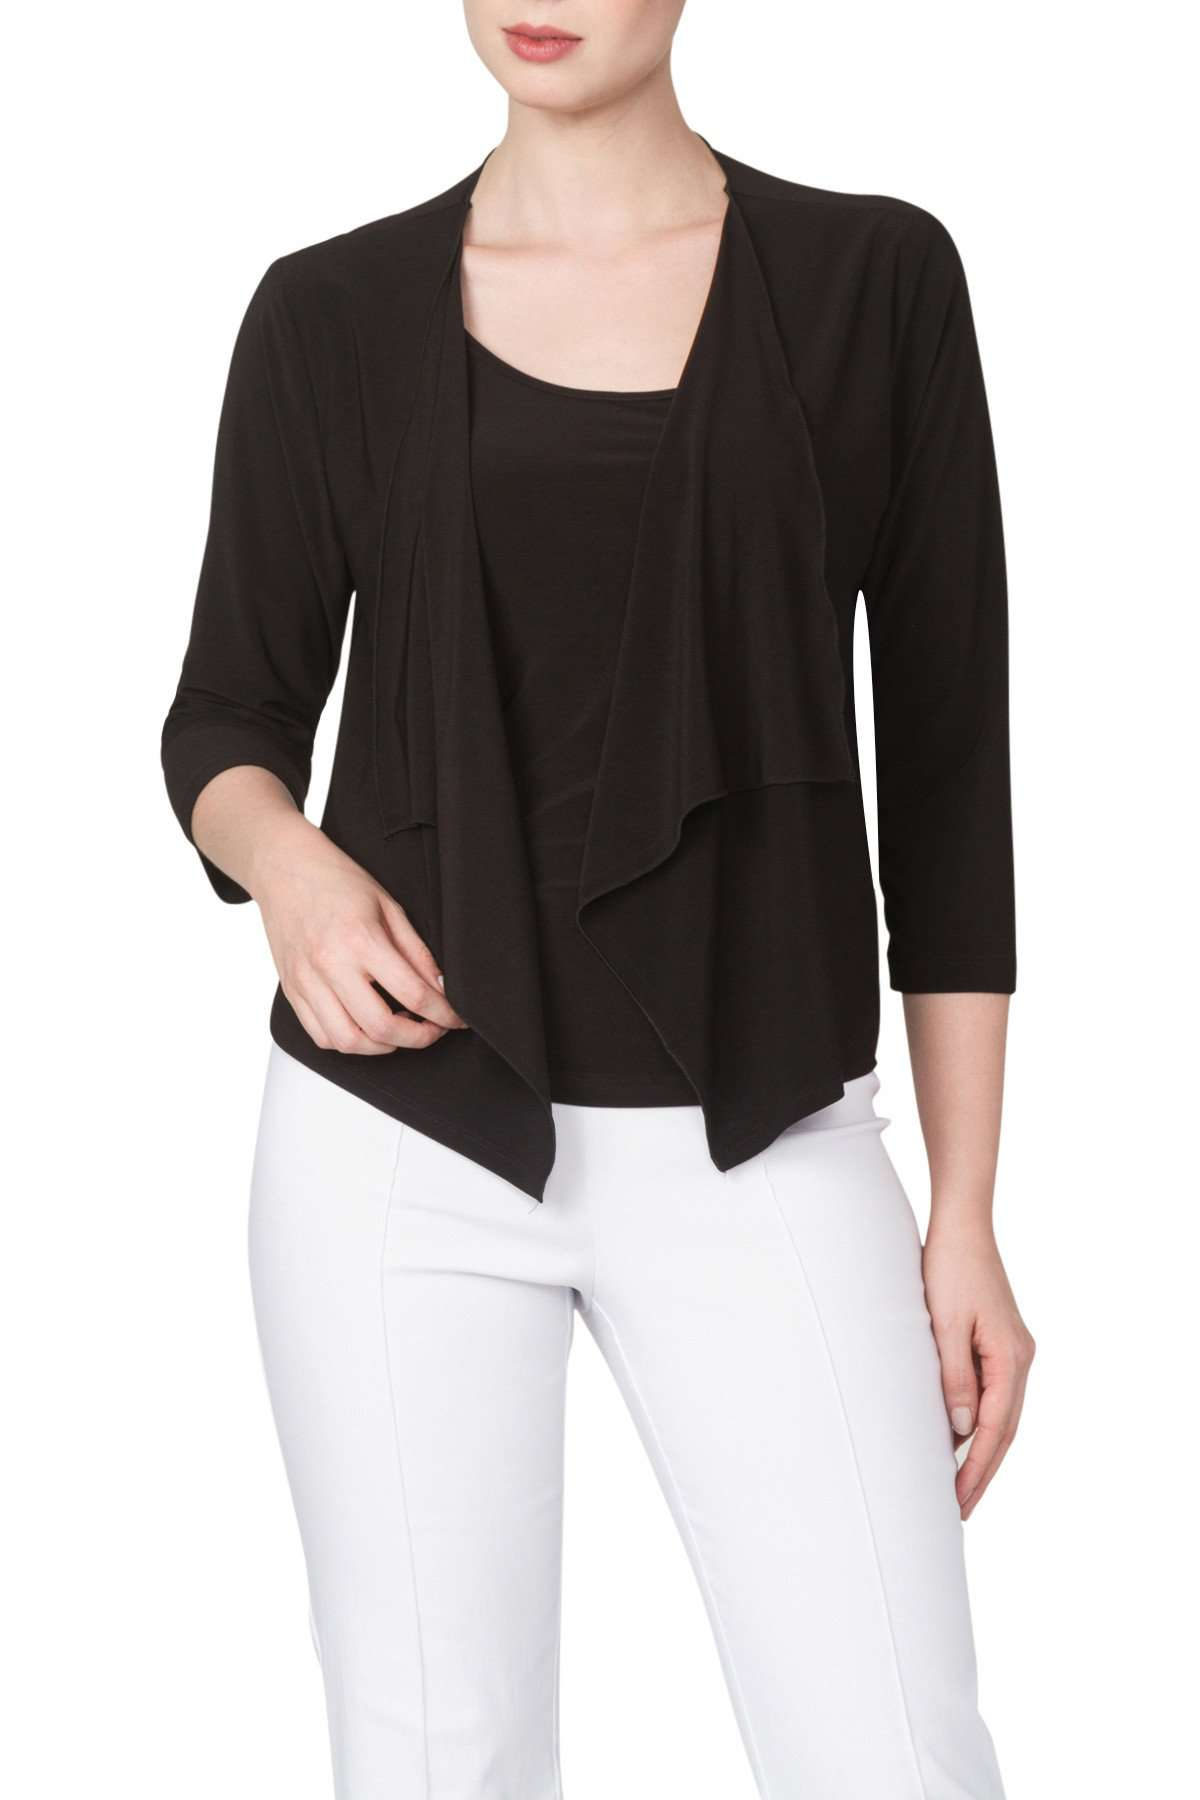 Black Jacket Bolero and Cover Up Perfect with Dresses Travel Friendly - Yvonne Marie